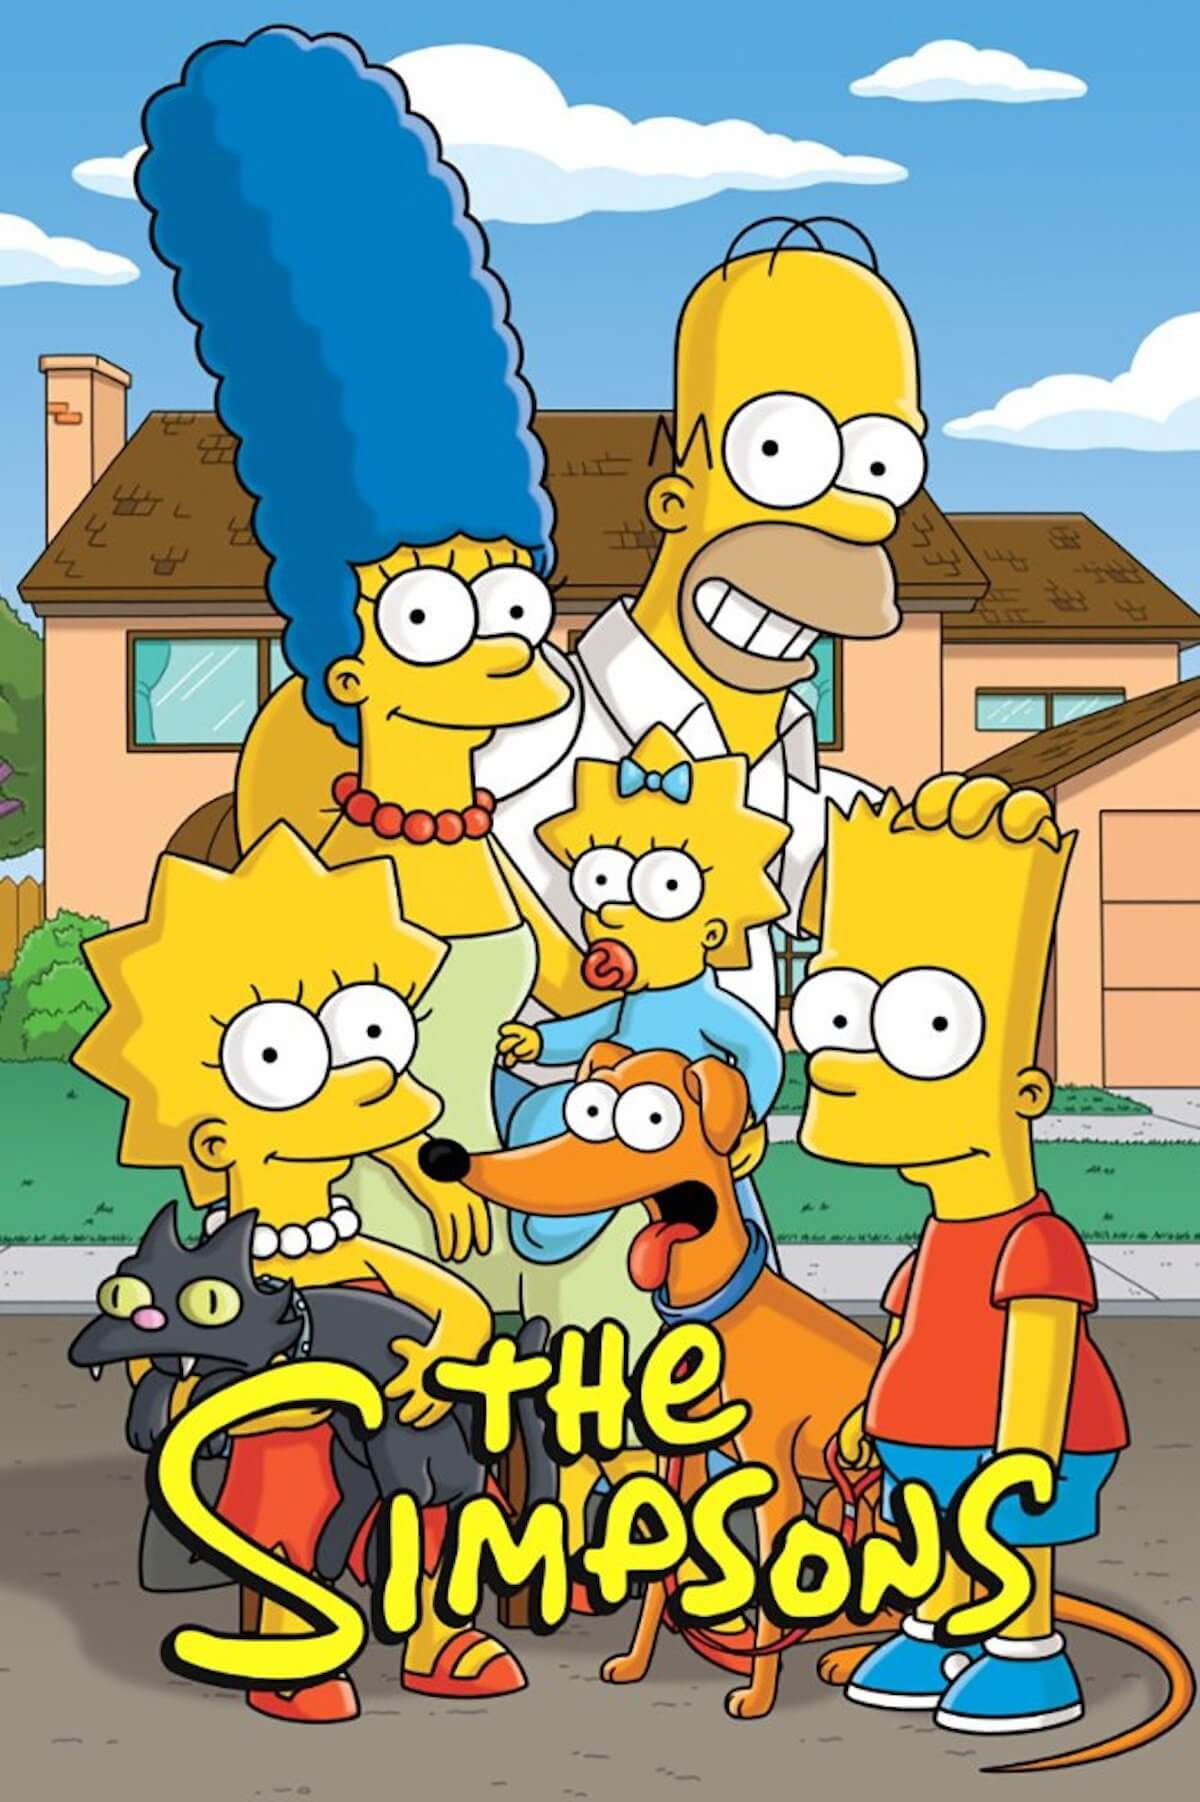 the-simpsons-poster.jpg